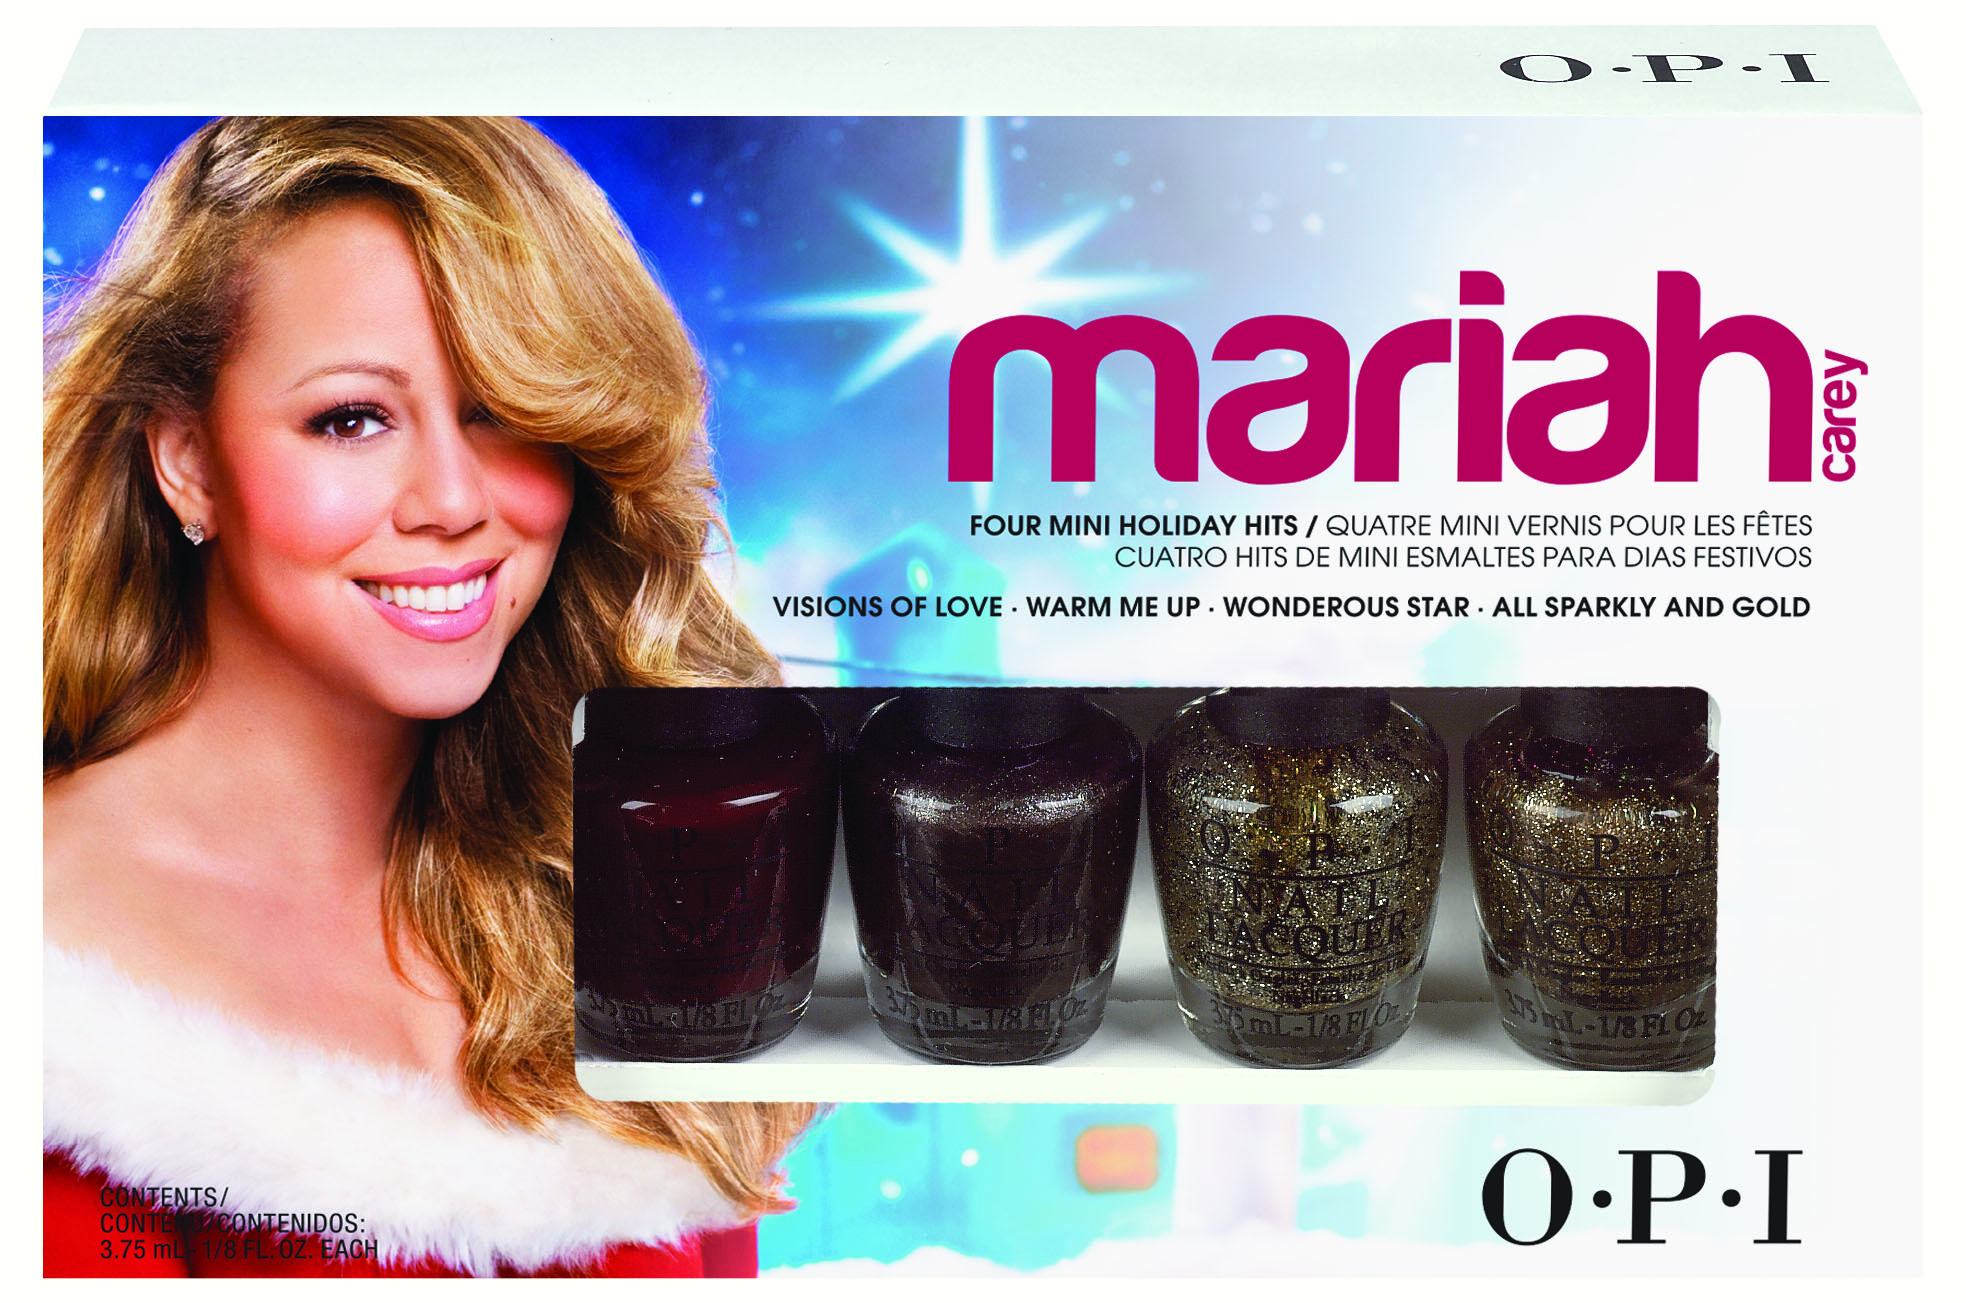 OPI Launches 4 NEW Limited Edition Mariah Carey Holiday Gift Sets ...